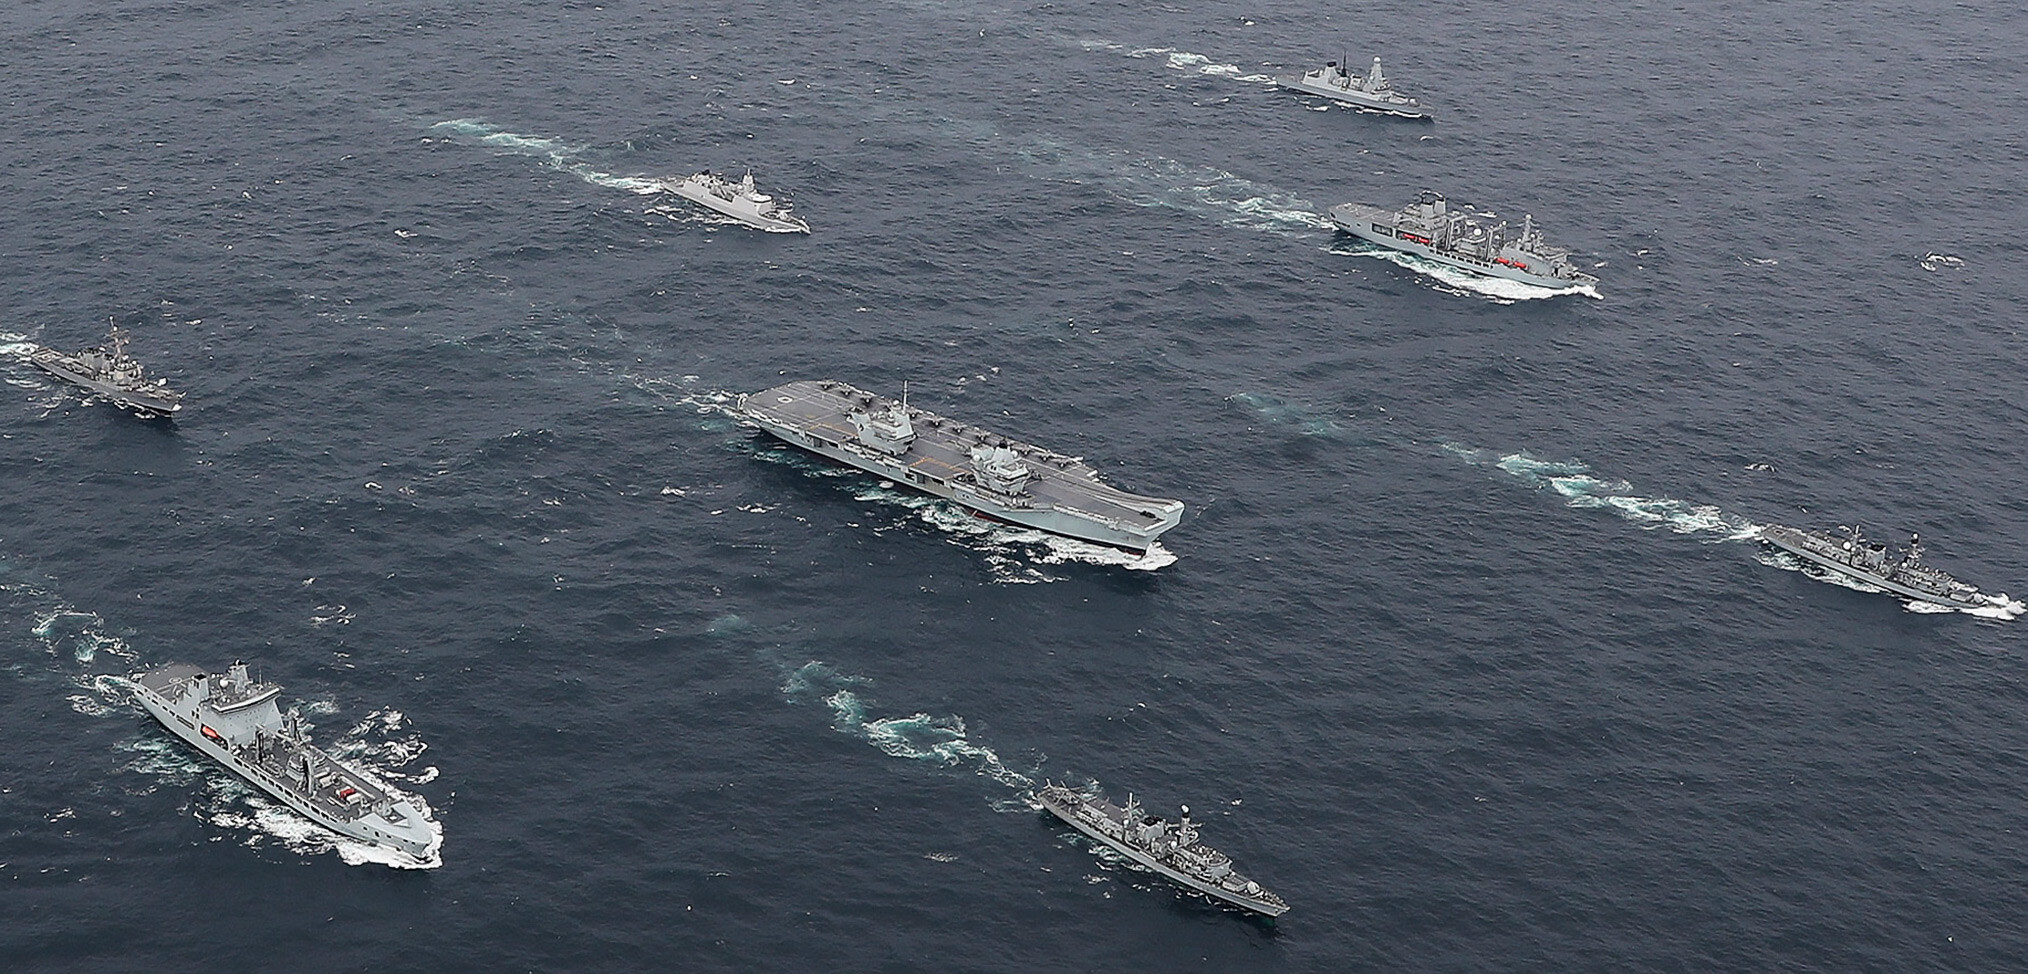 More details of the upcoming UK Carrier Strike Group deployment emerge